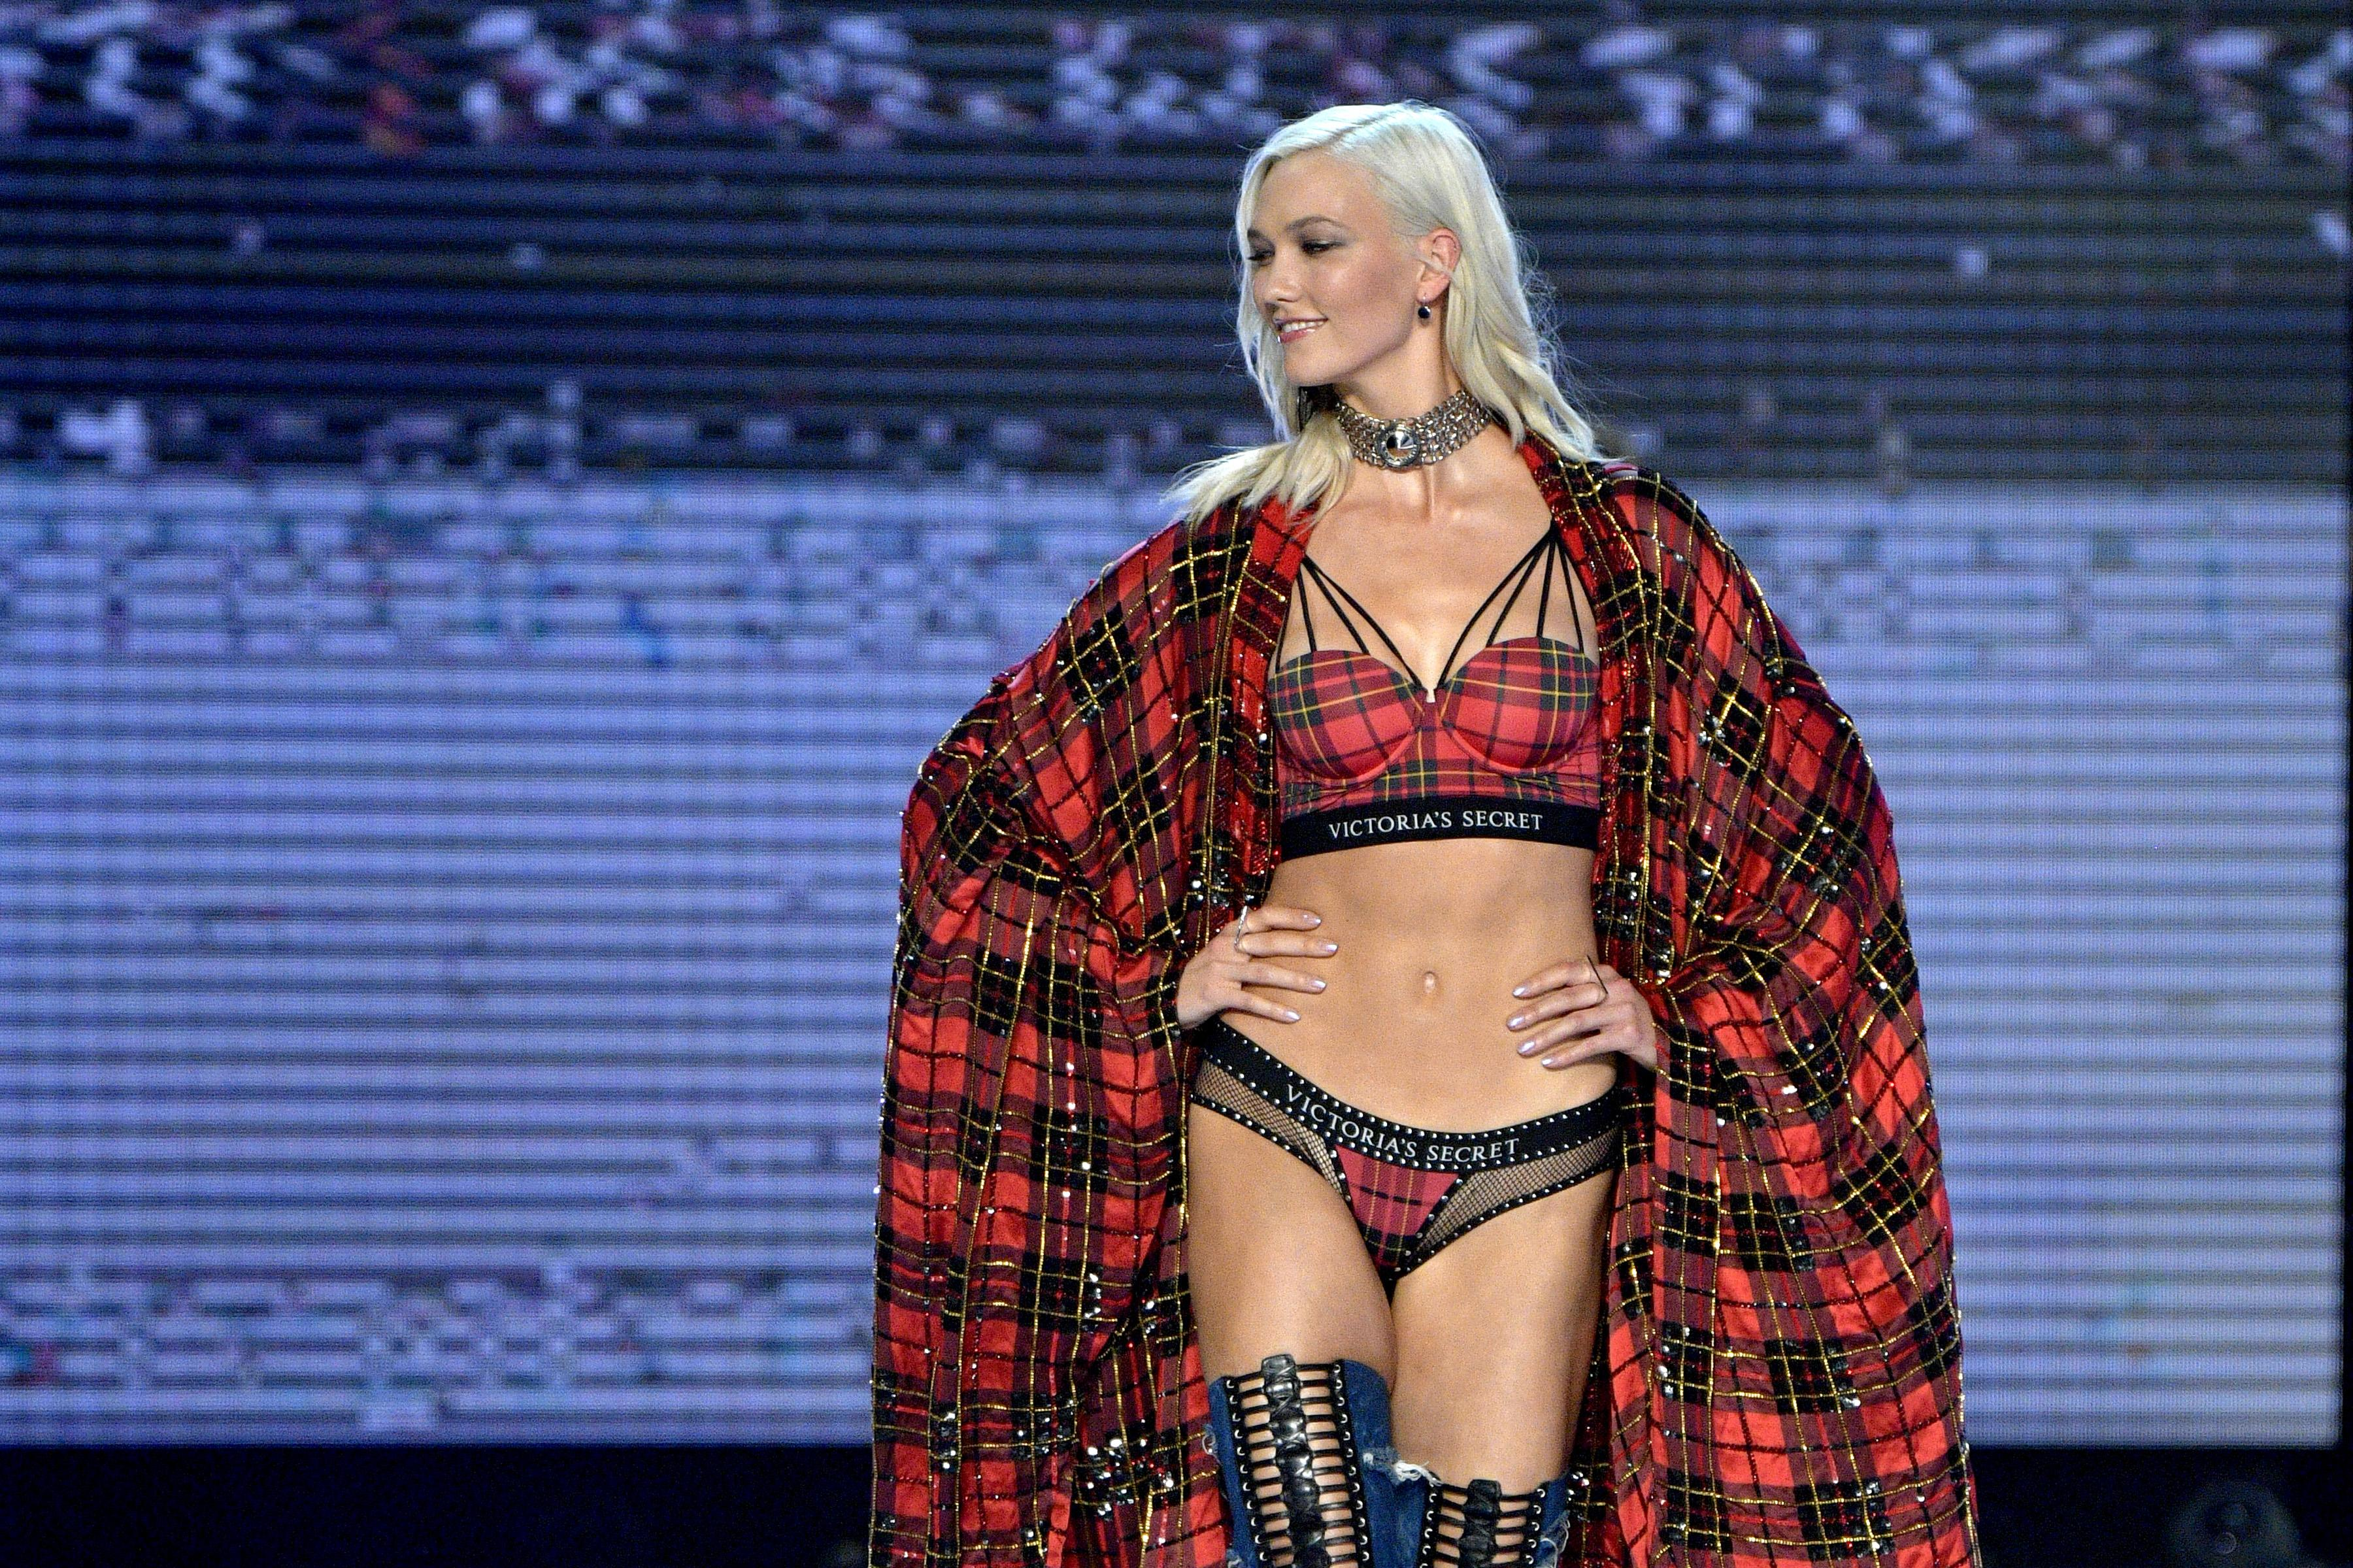 70dece87e Karlie Kloss walked the runway at the 2017 Victoria's Secret fashion show  in Shanghai on Nov. 20, 2017. Photo: Matt Winkelmeyer/Getty Images for  Victoria's ...